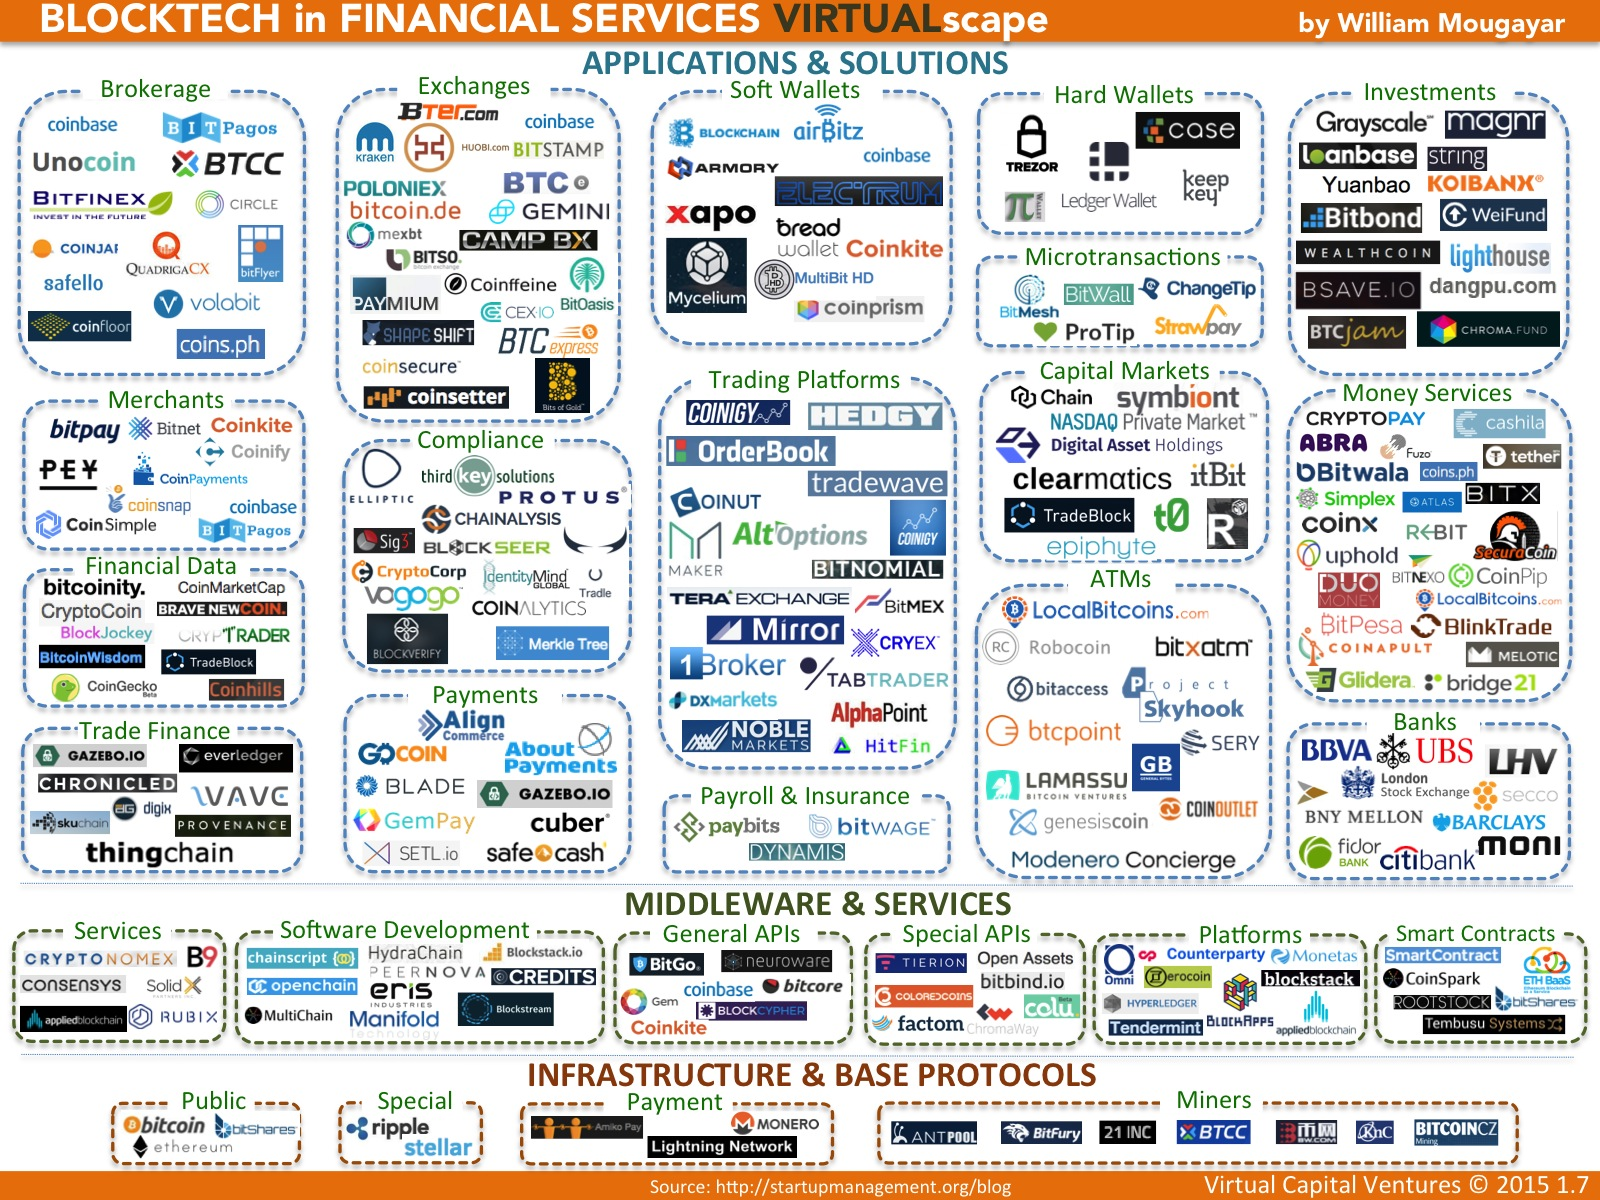 Blockchain in Financial Services Landscape